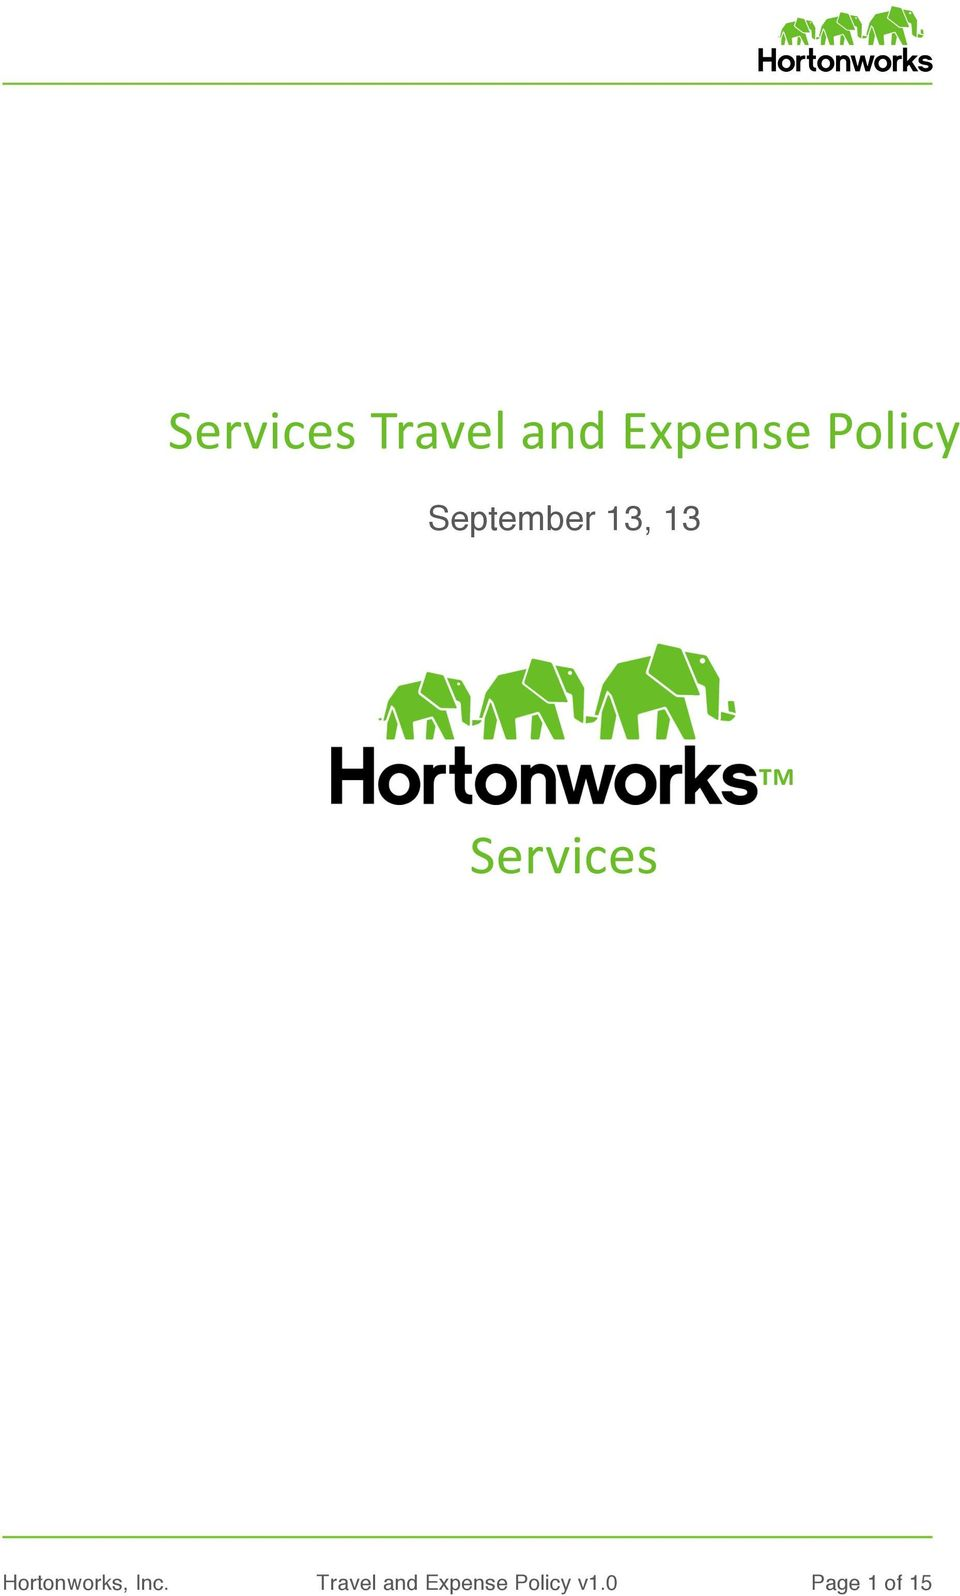 Services Hortonworks, Inc.